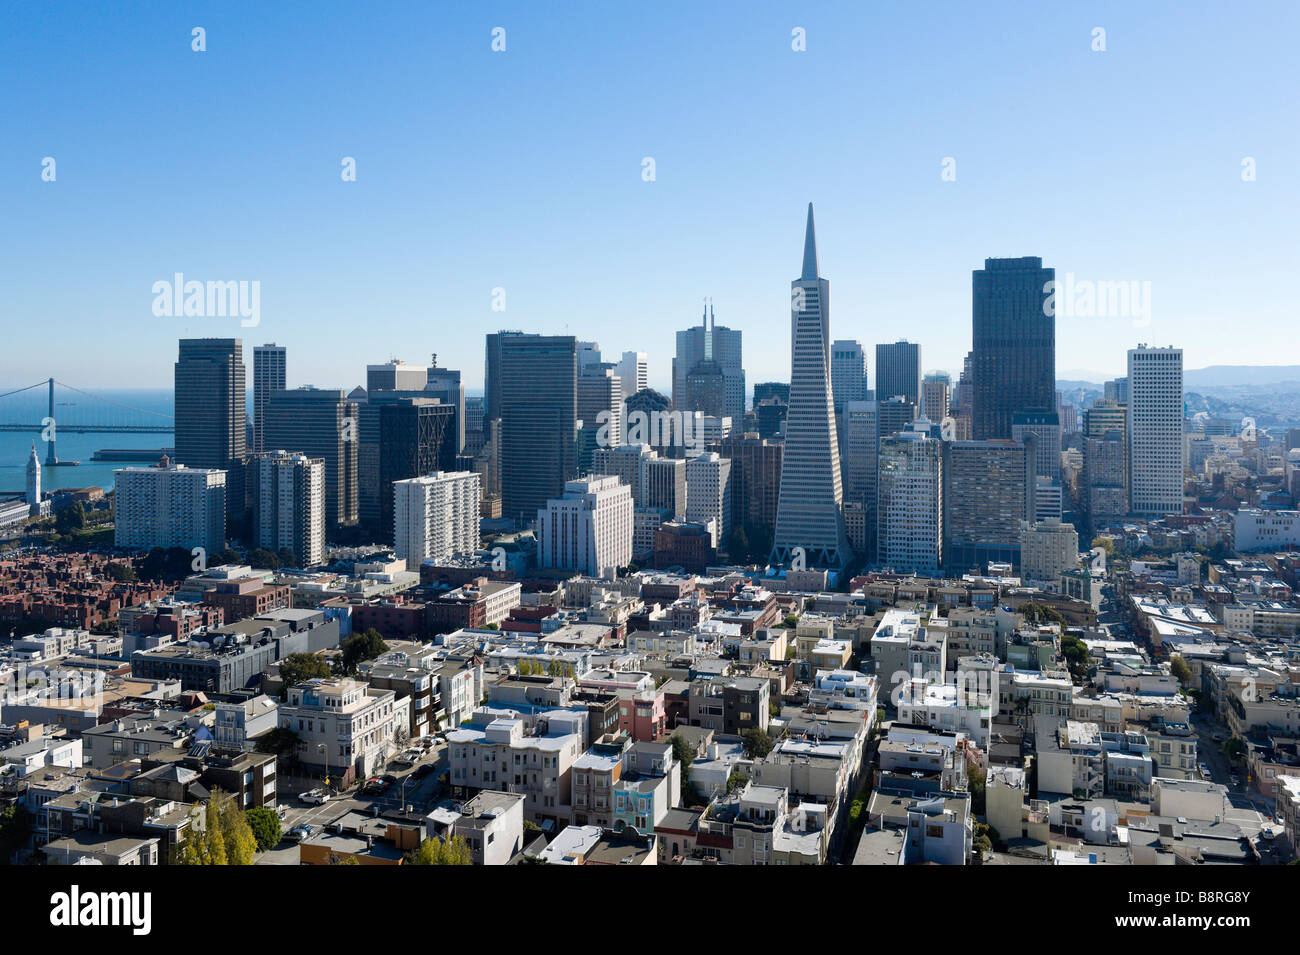 The downtown financial district from the top of the Coit Tower onTelegraph Hill, San Francisco, California, USA Stock Photo